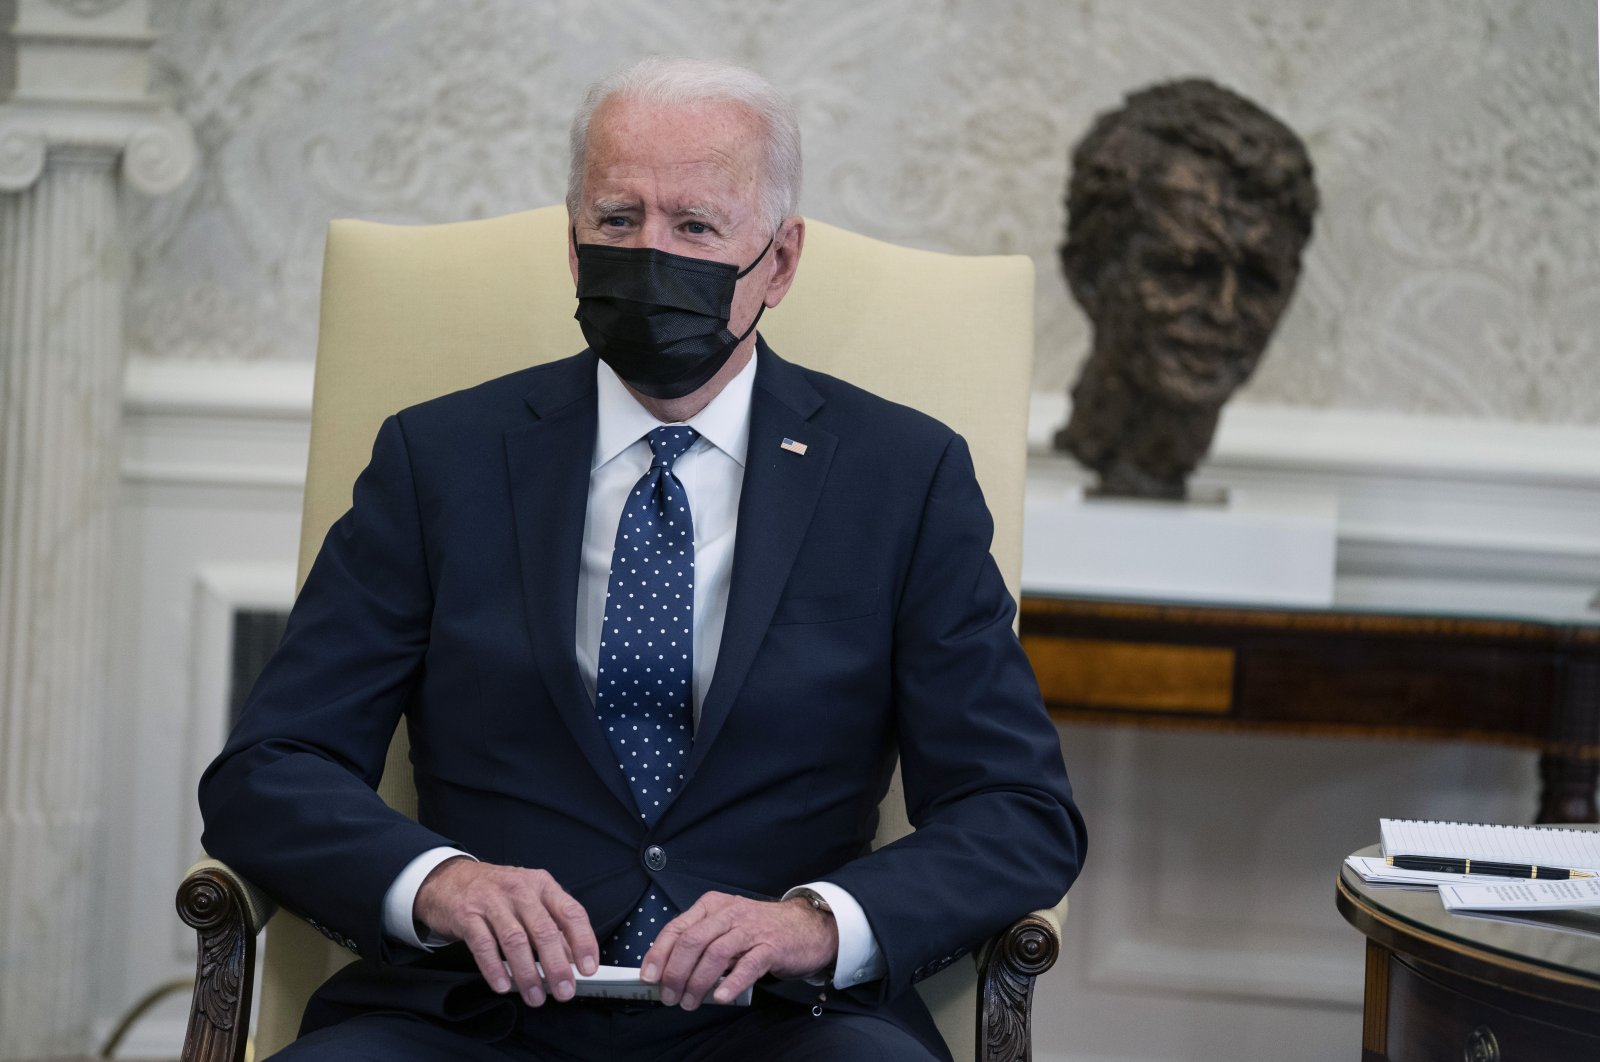 U.S. President Joe Biden speaks during a meeting with members of the Congressional Hispanic Caucus, in the Oval Office of the White House, Washington, U.S., Tuesday, April 20, 2021. (AP Photo)